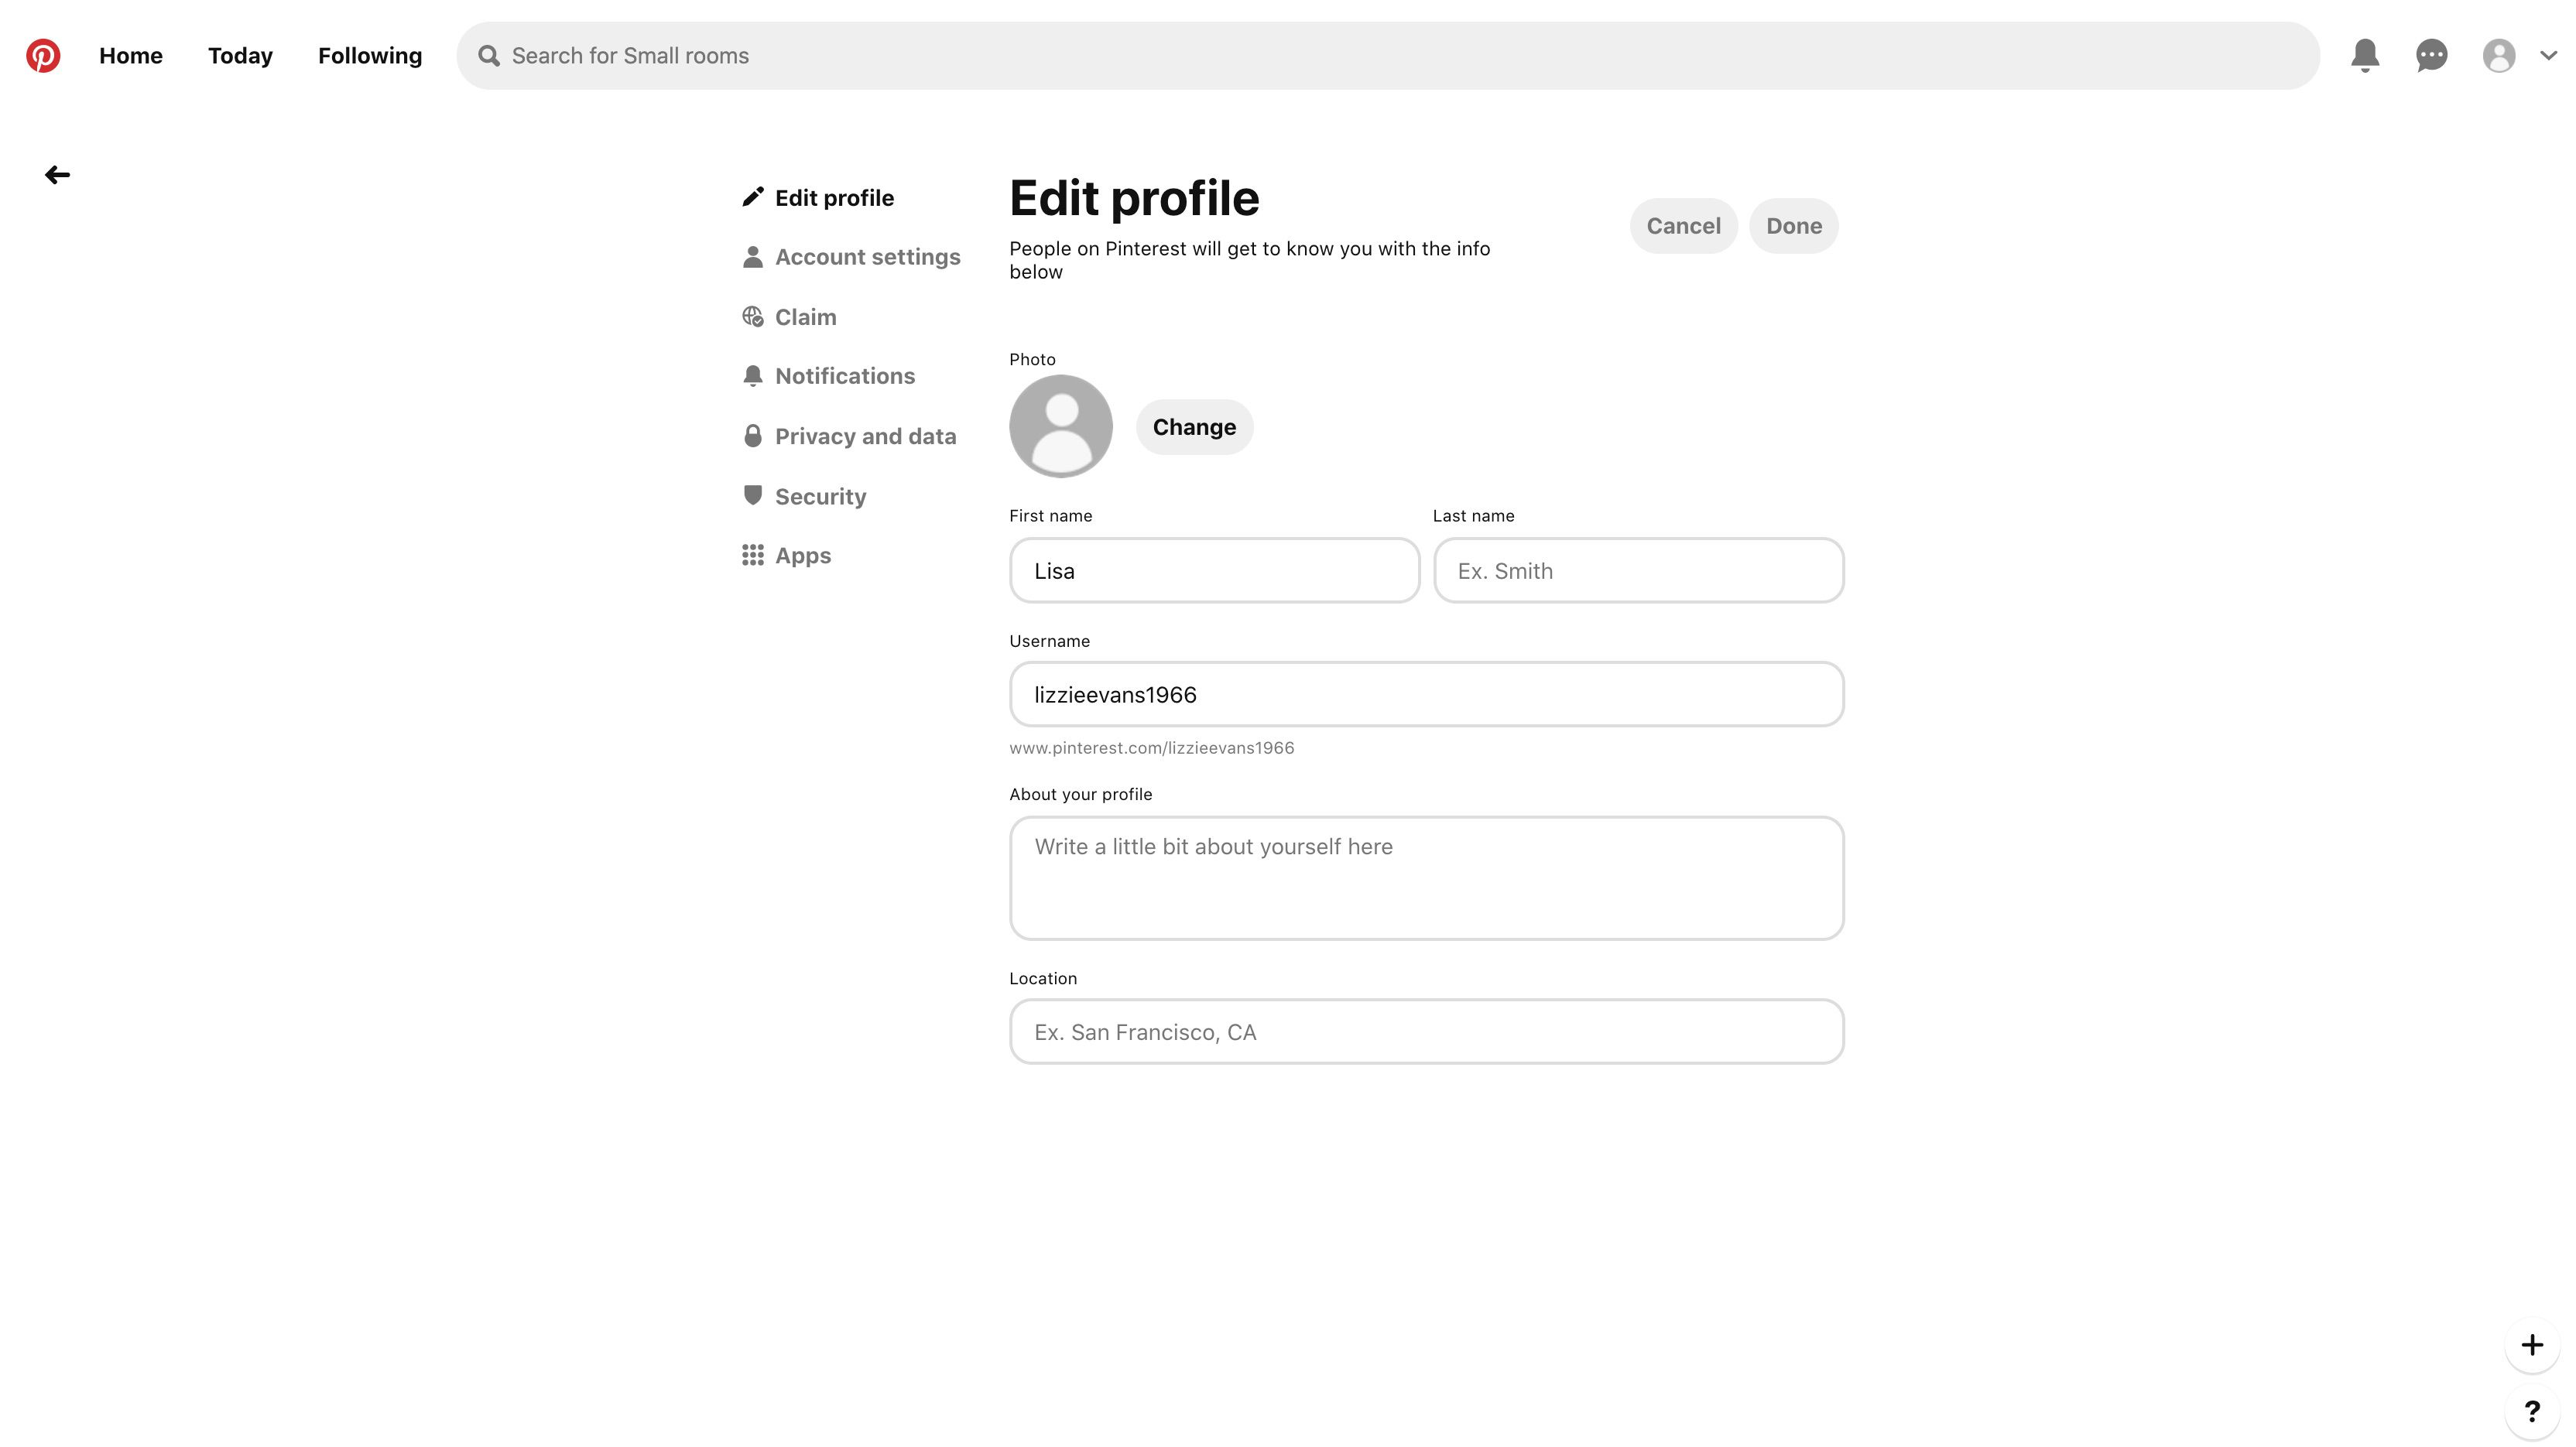 Select Settings to edit your account profile,